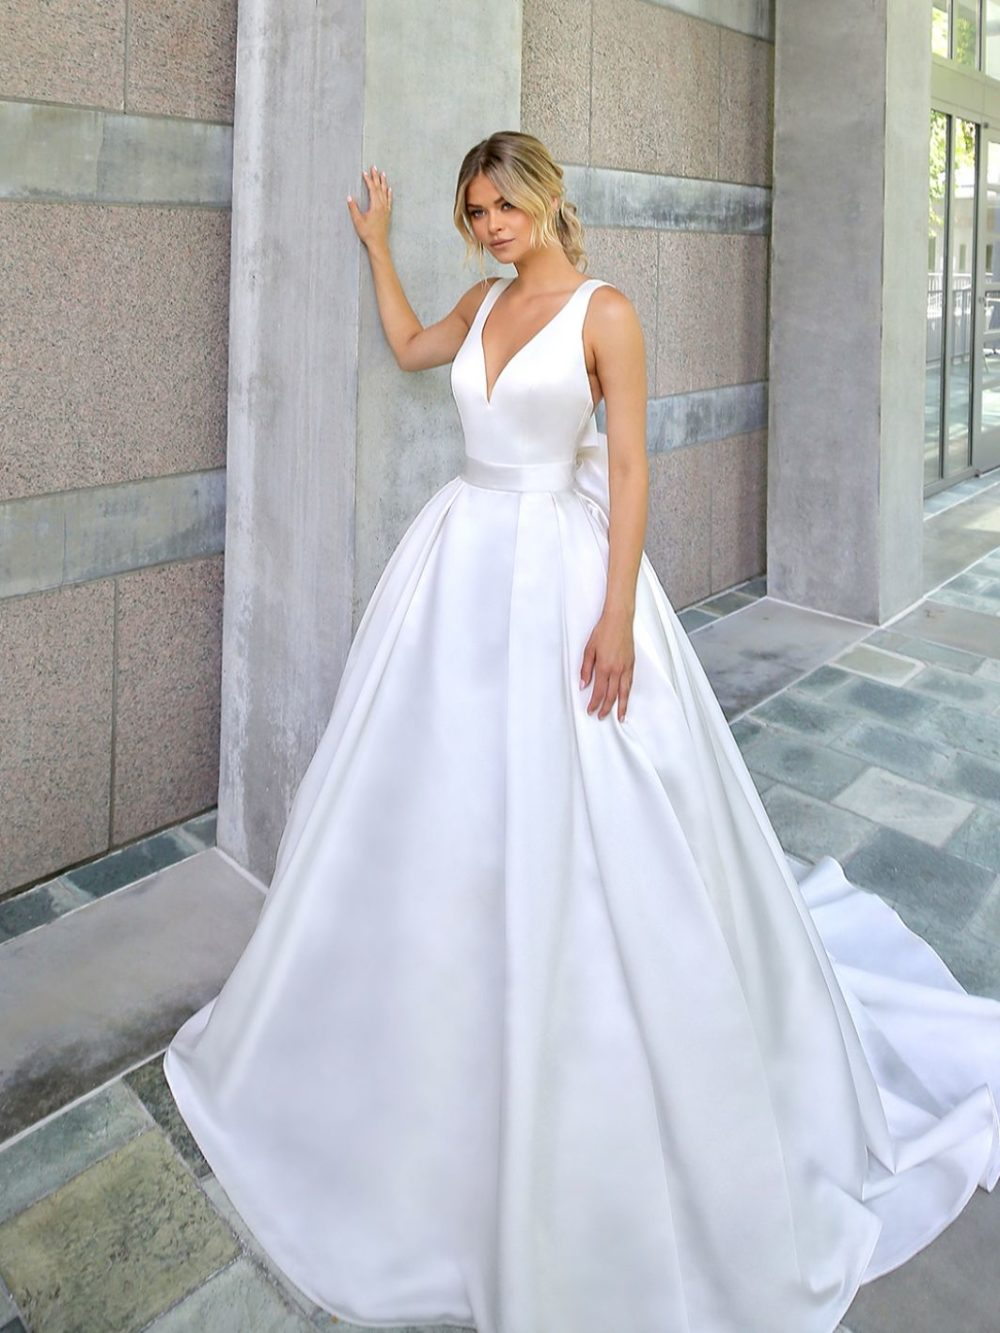 Beautiful by Enzoani Wedding gown dress BT20-23 white